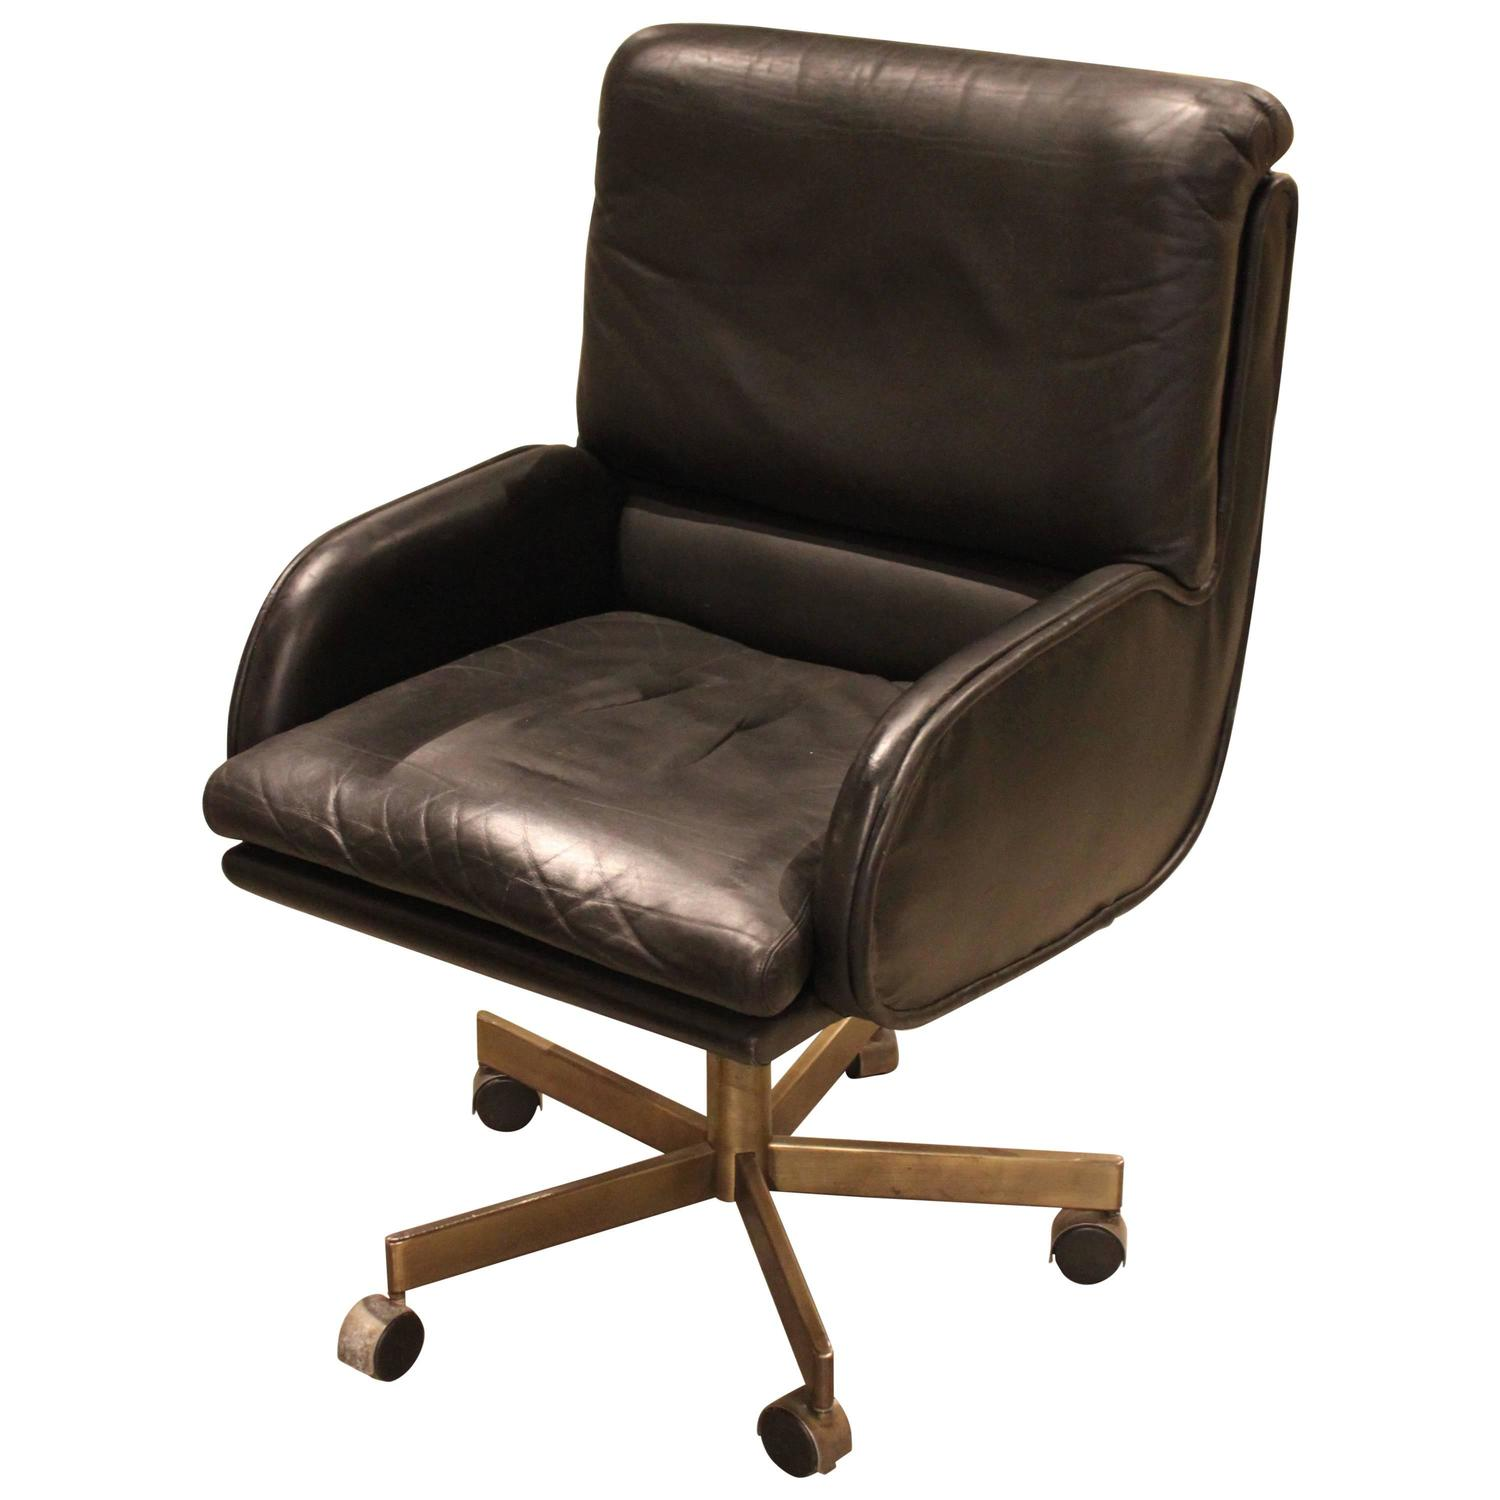 beautiful vintage leather desk chair at 1stdibs